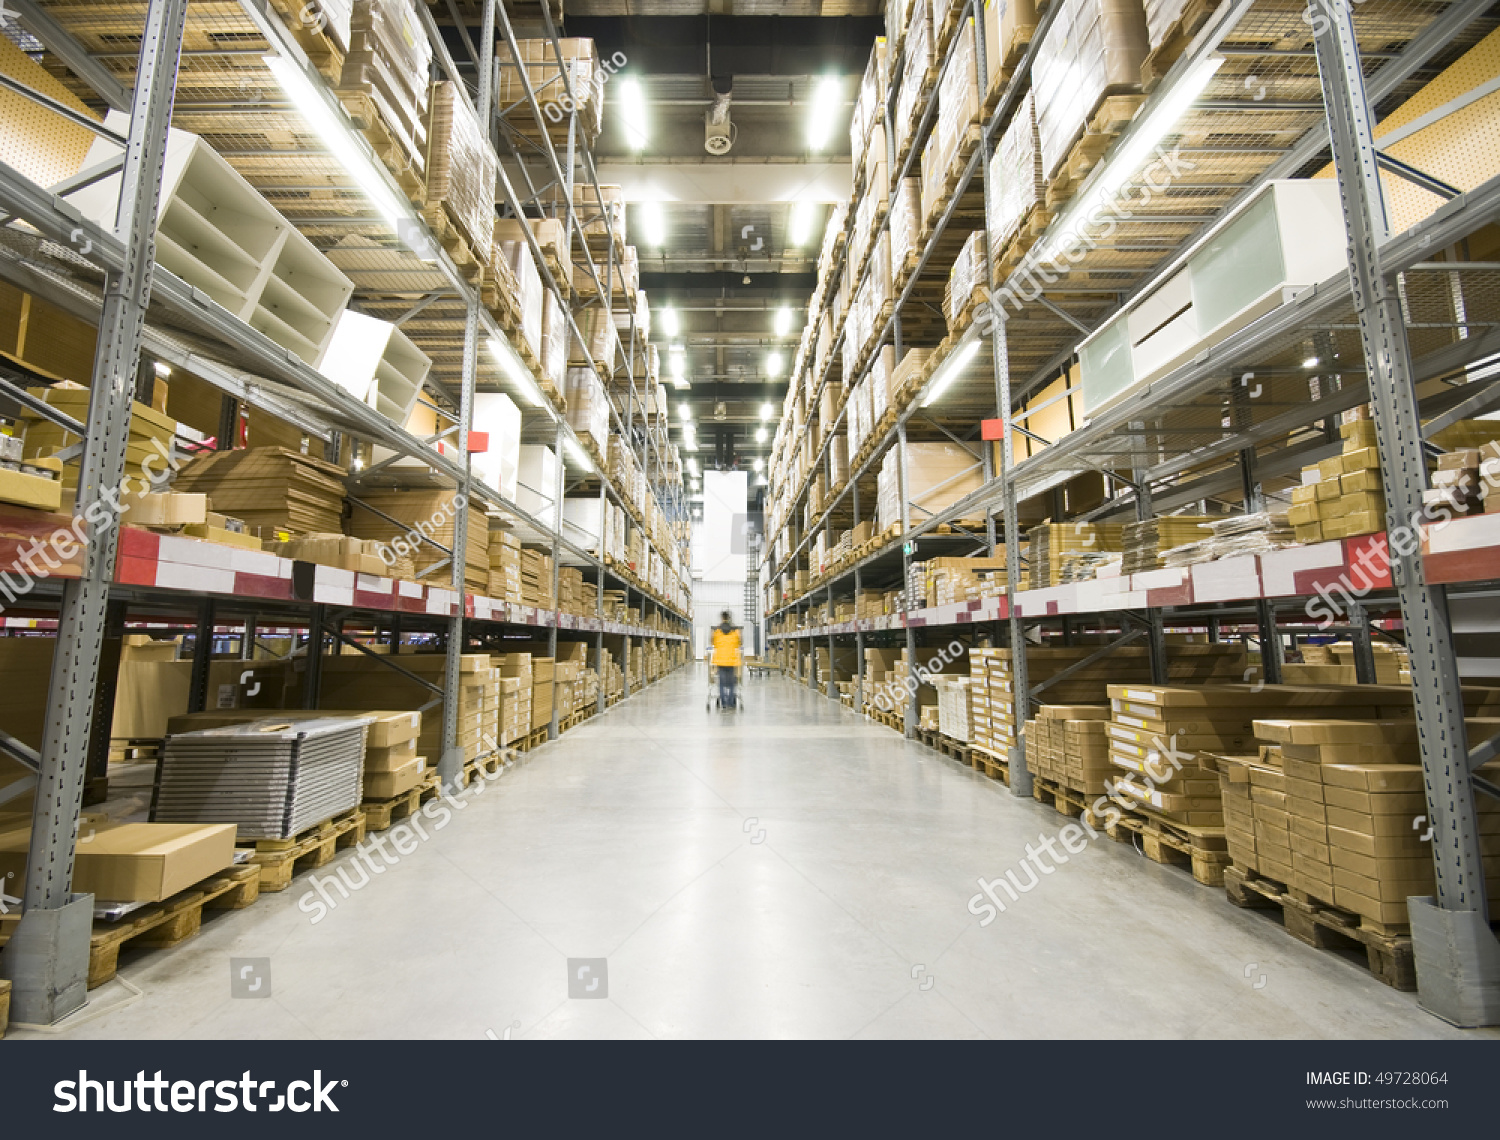 Furniture Warehouse Of Large Furniture Warehouse Stock Photo 49728064 Shutterstock